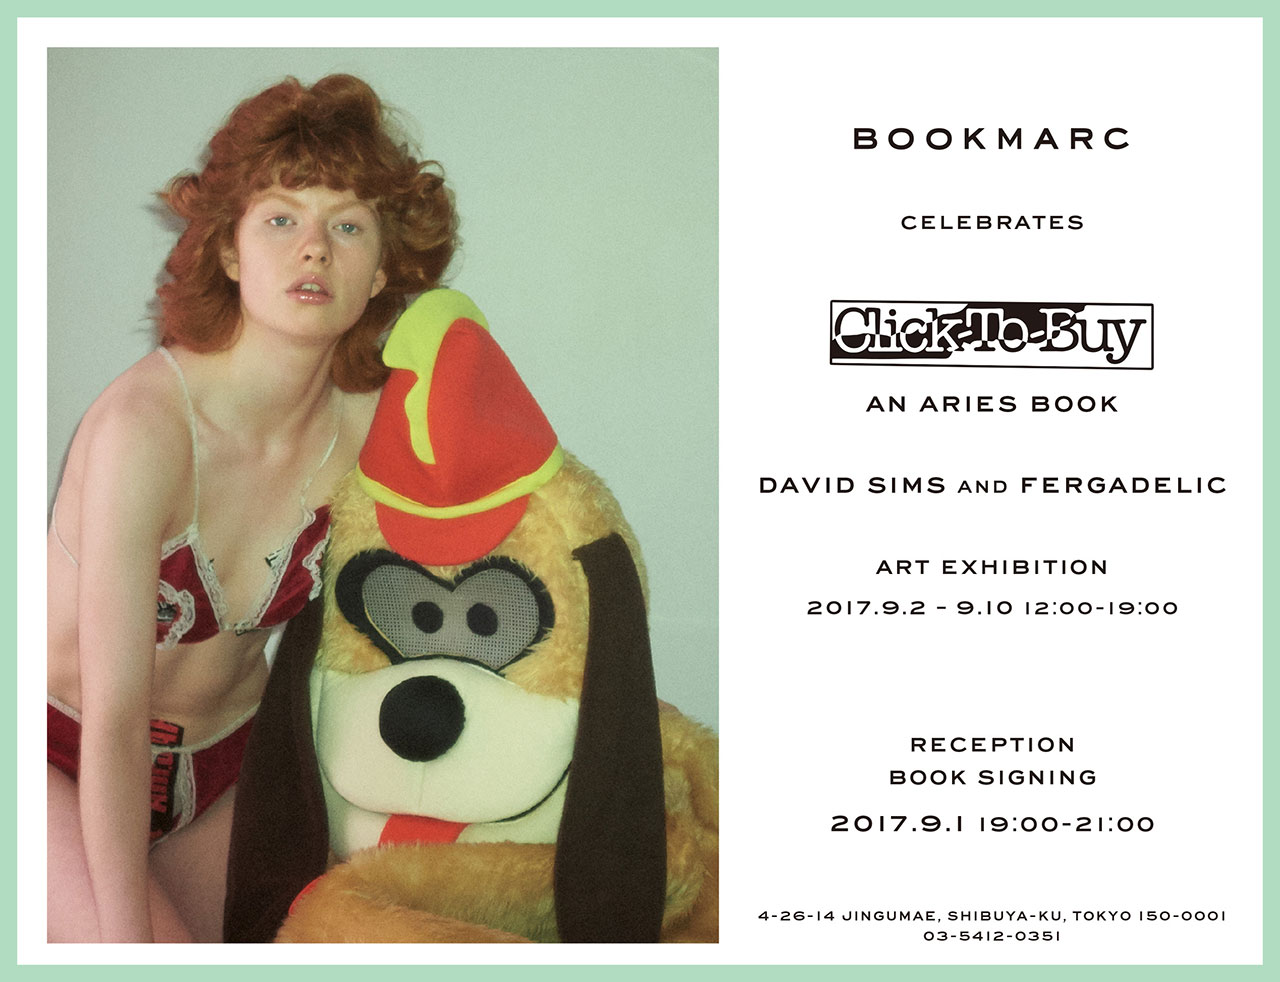 David Sims and Fergadelic「Click-To-Buy」An Aries Book Art Exhibition